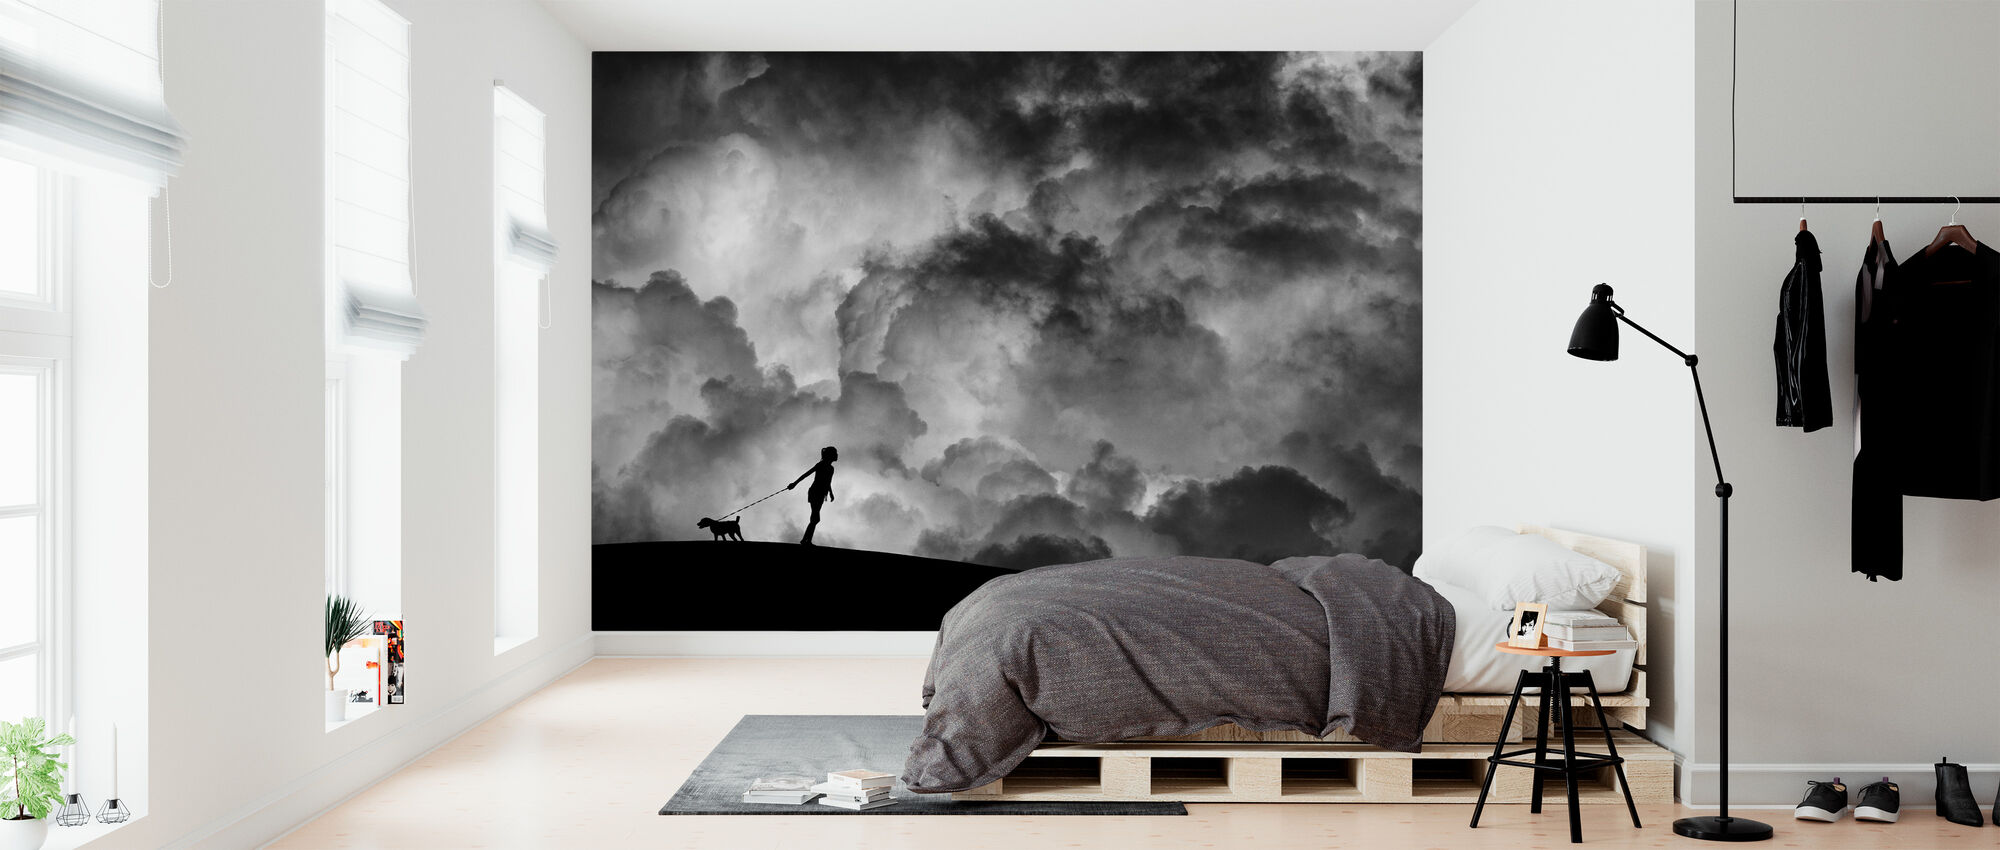 Prelude to the Dream, black and white - Wallpaper - Bedroom